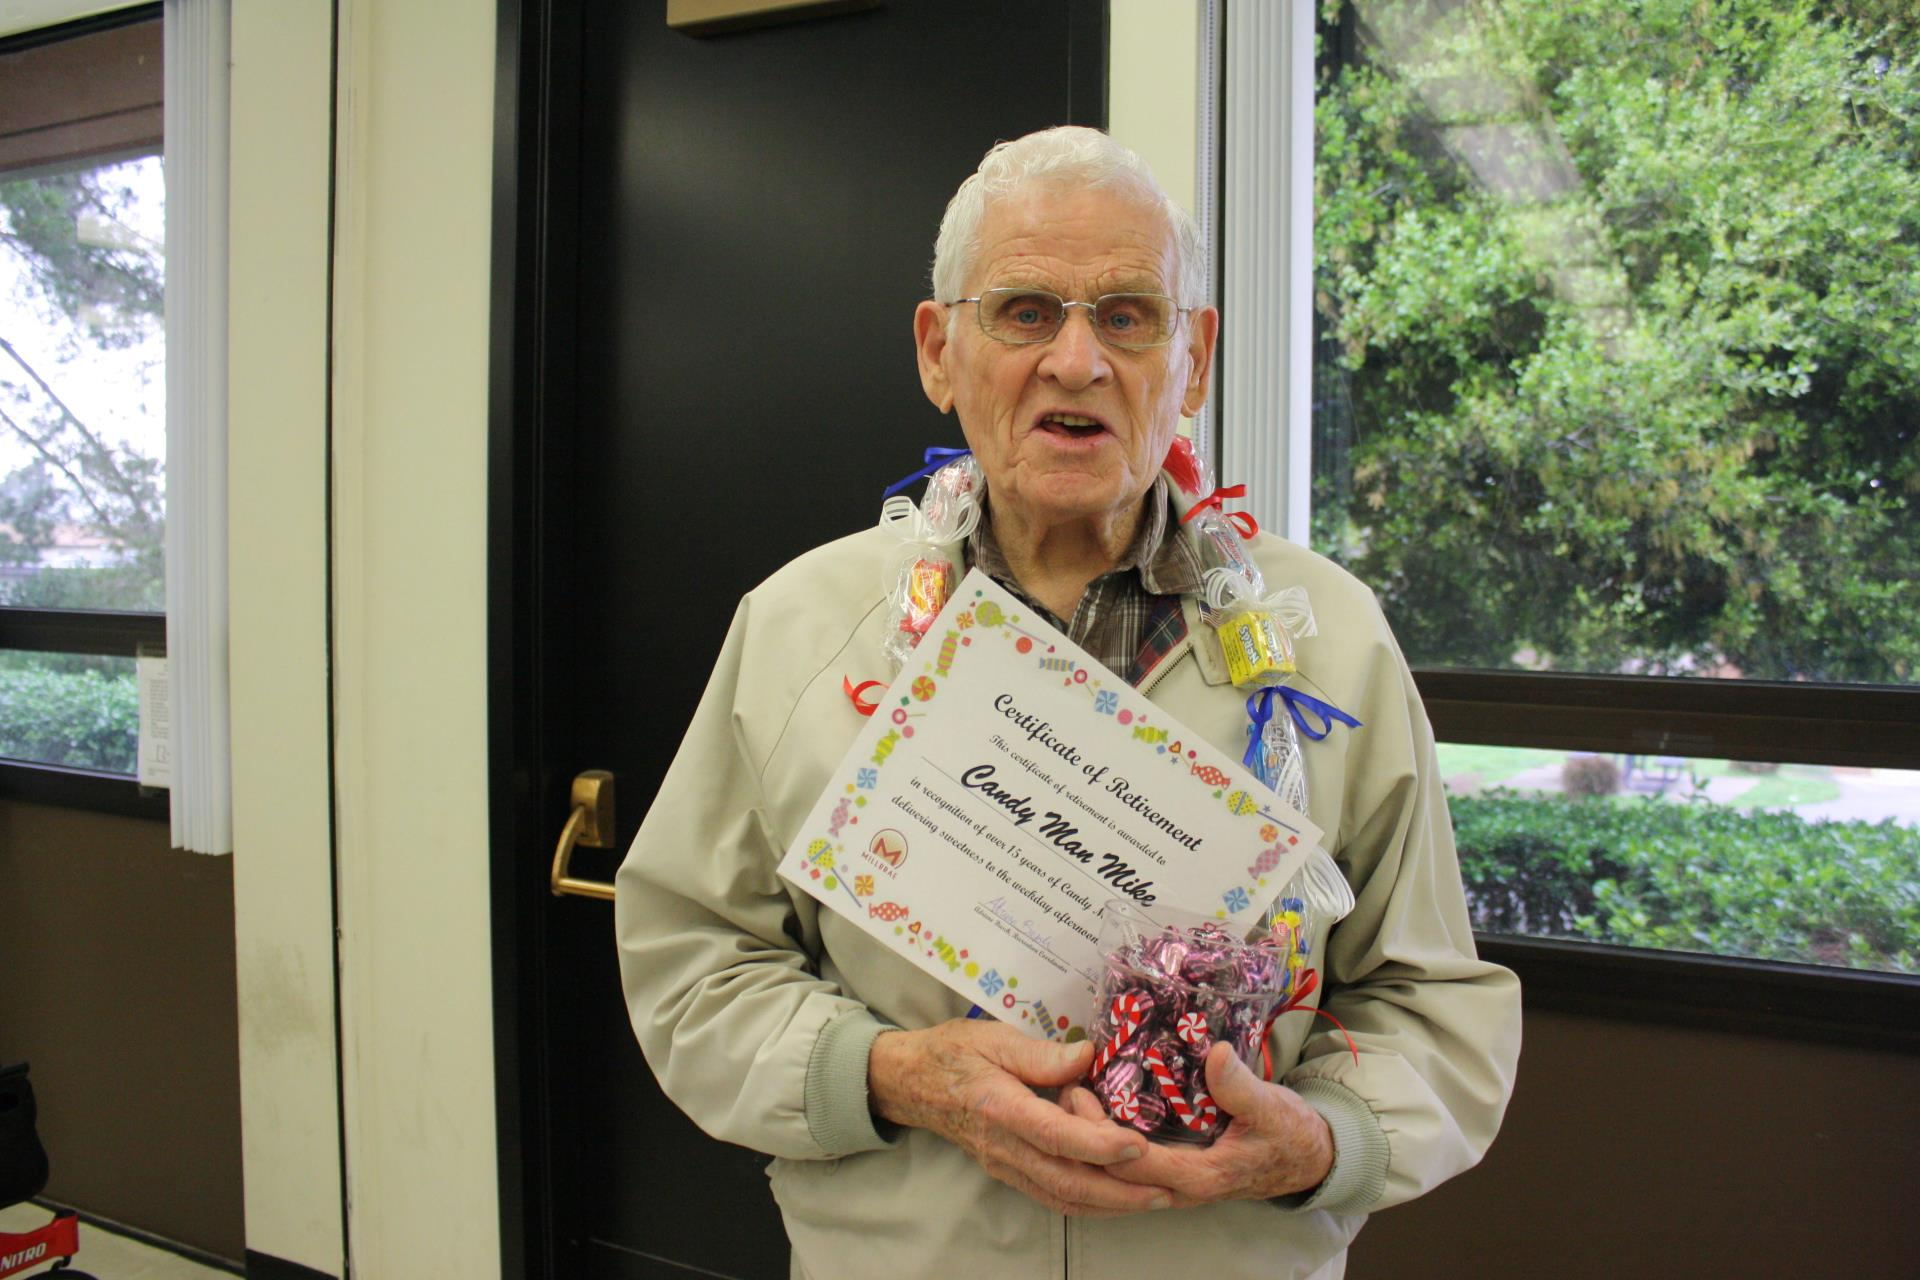 """Candyman Mike"" is honored and thanked for handing out candy for 15 years."